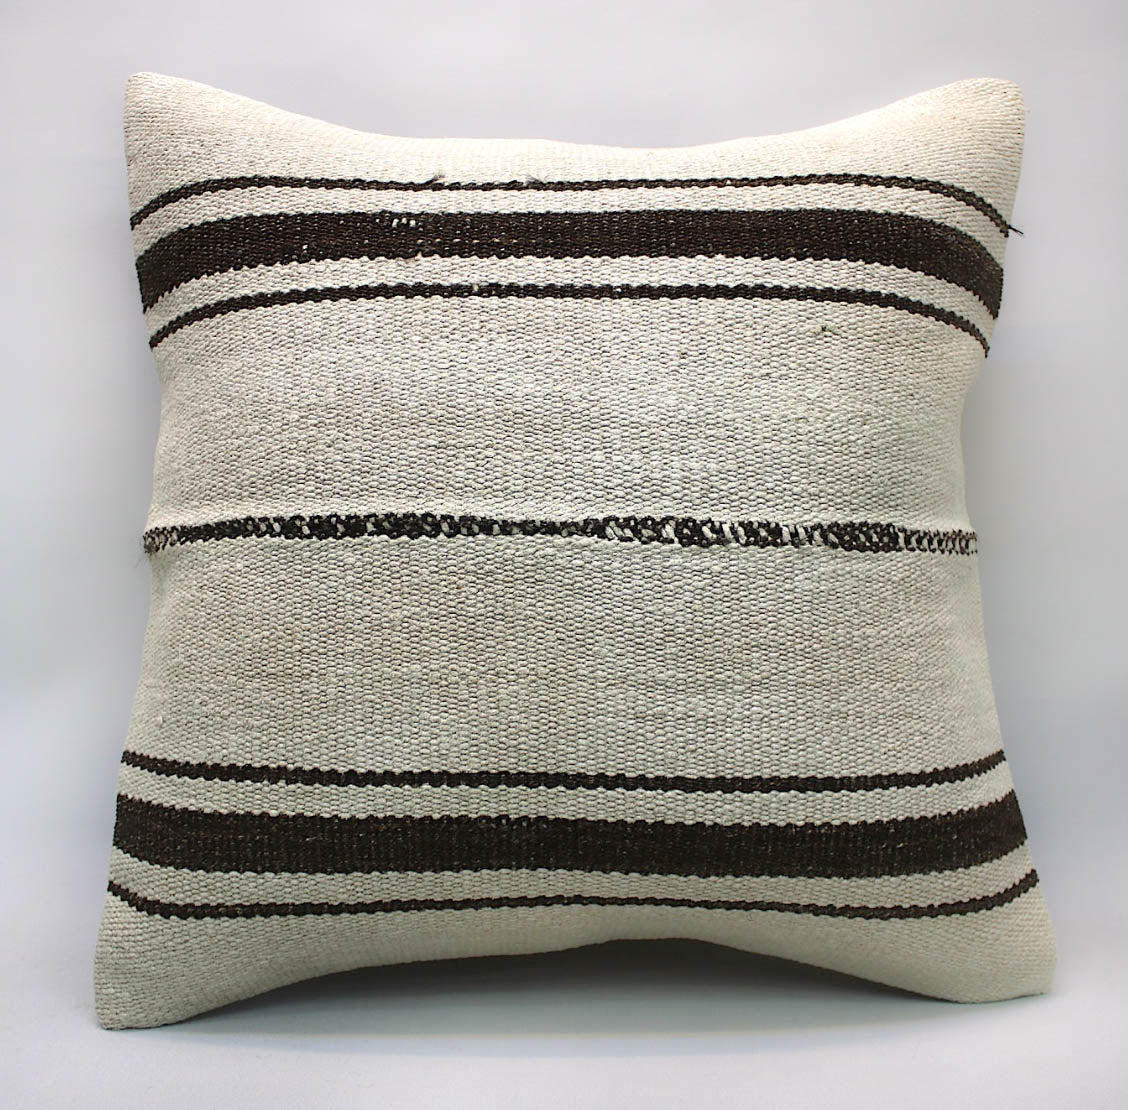 Kilim Pillow Cover - 09